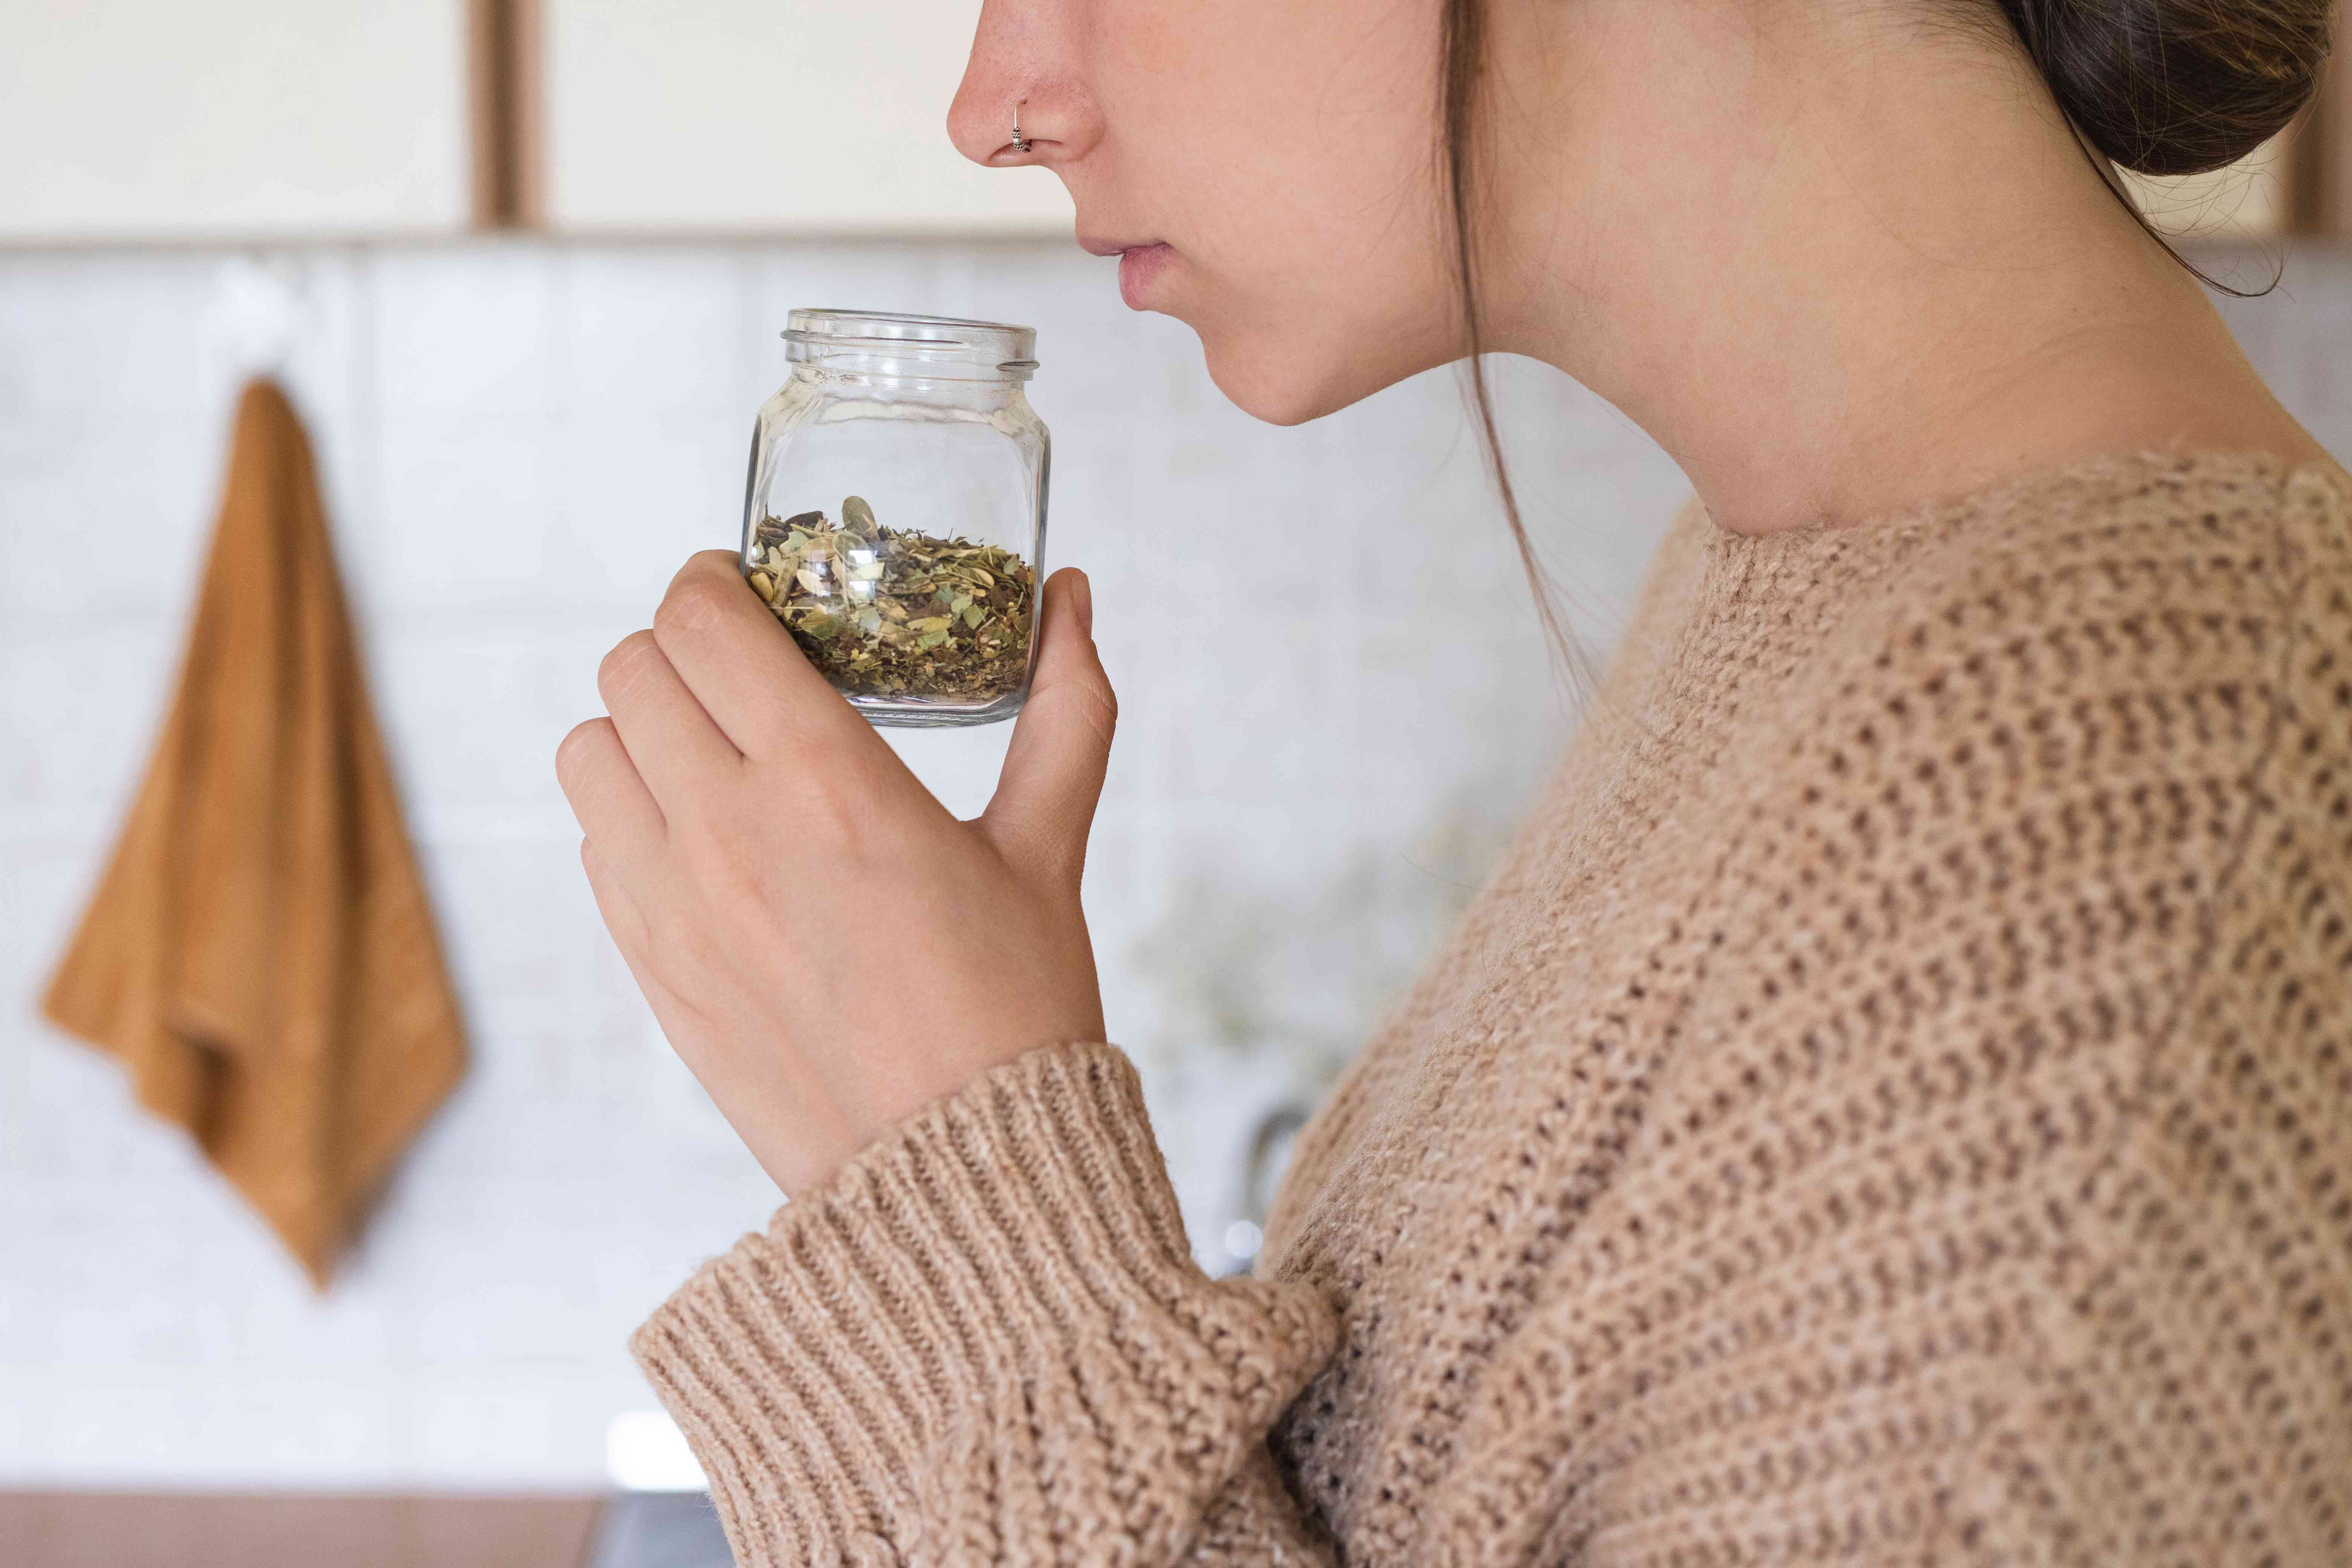 woman in sweater smells jar of dried spices to make sure it's still fresh